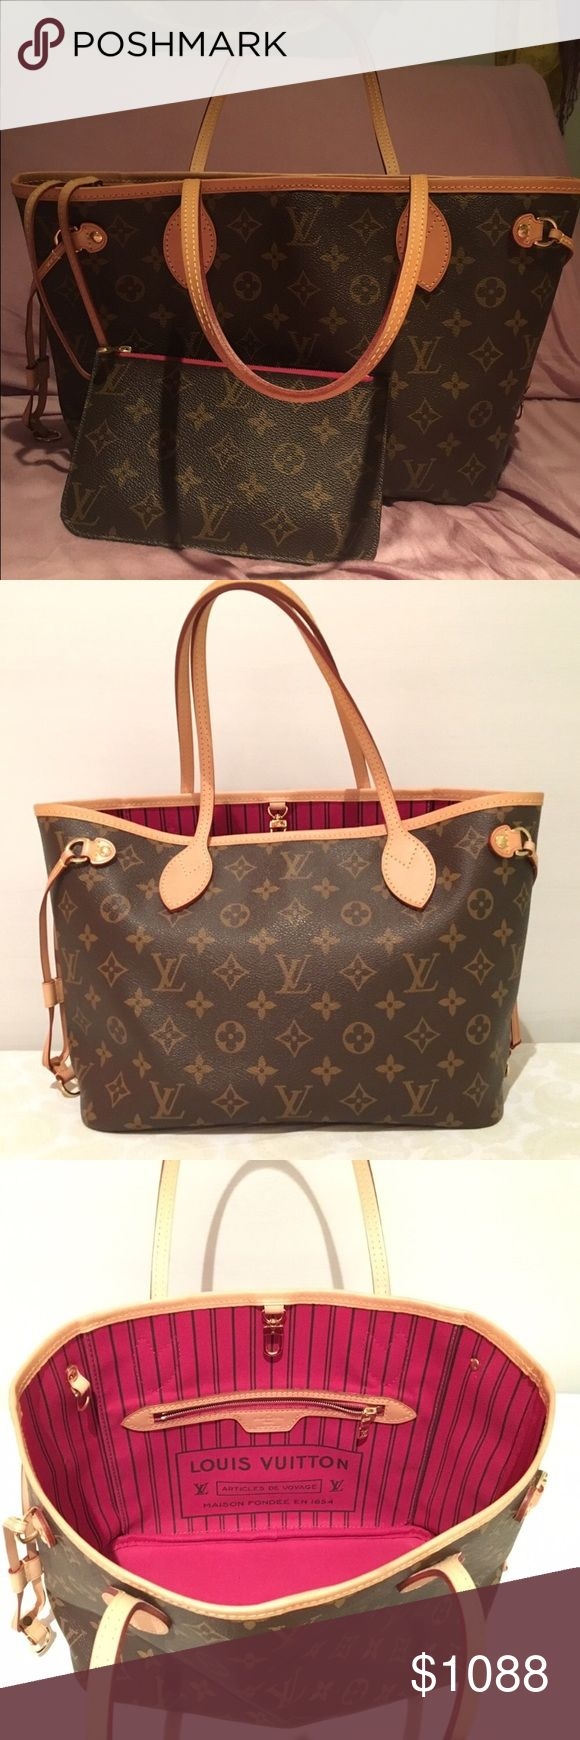 Classic Neverfull PM Pivione Interior and Pochette Excellent condition. Dust bad and original box. Pochette included. I purchased in Poshmark and only used once. Has been inspected by posh for authenticity Louis Vuitton Bags Totes